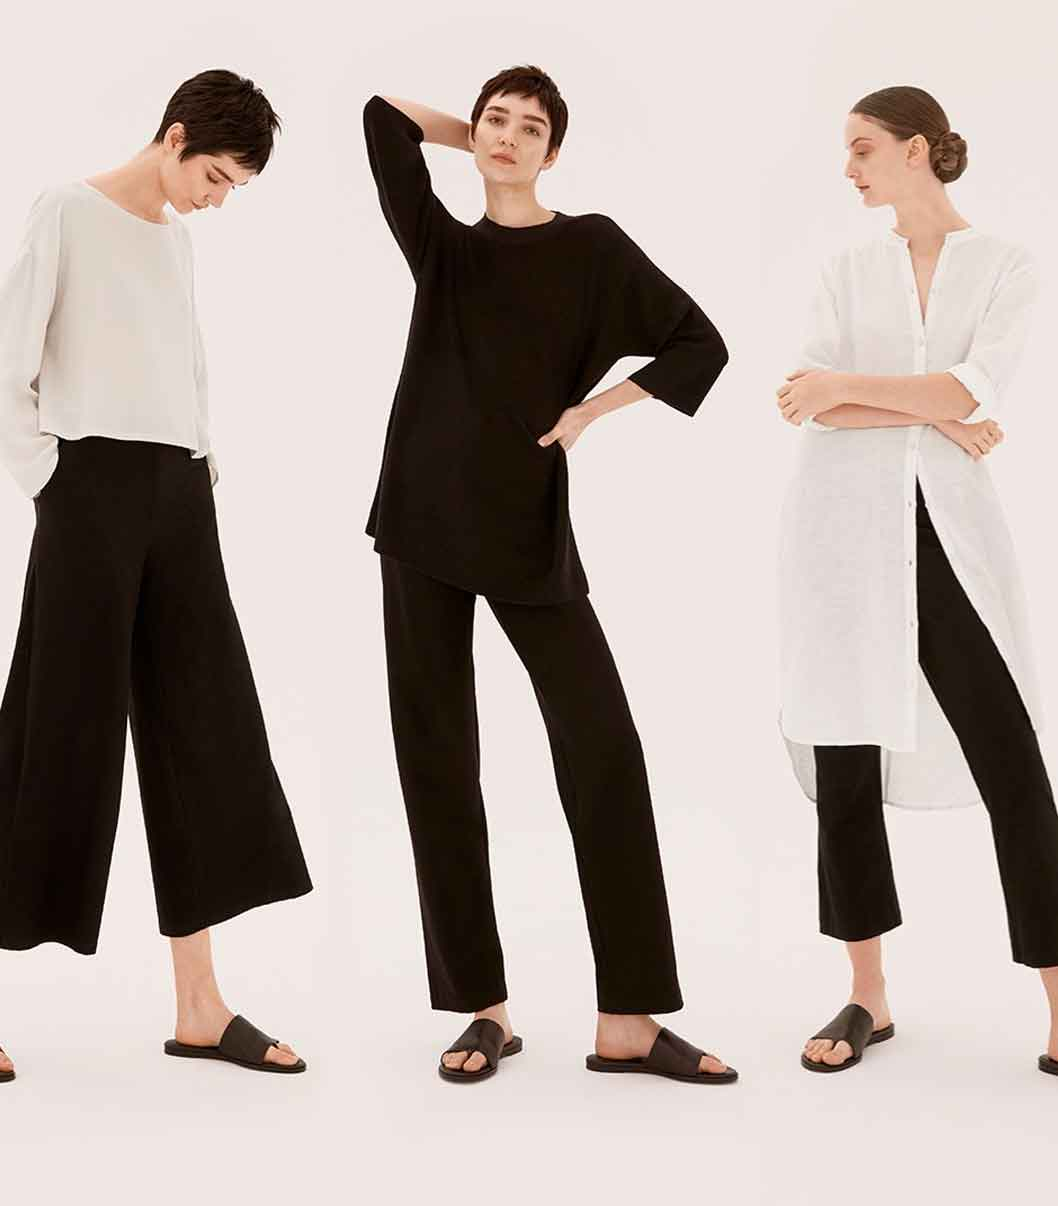 New York ethical sustainable fashion label brand EILEEN FISHER